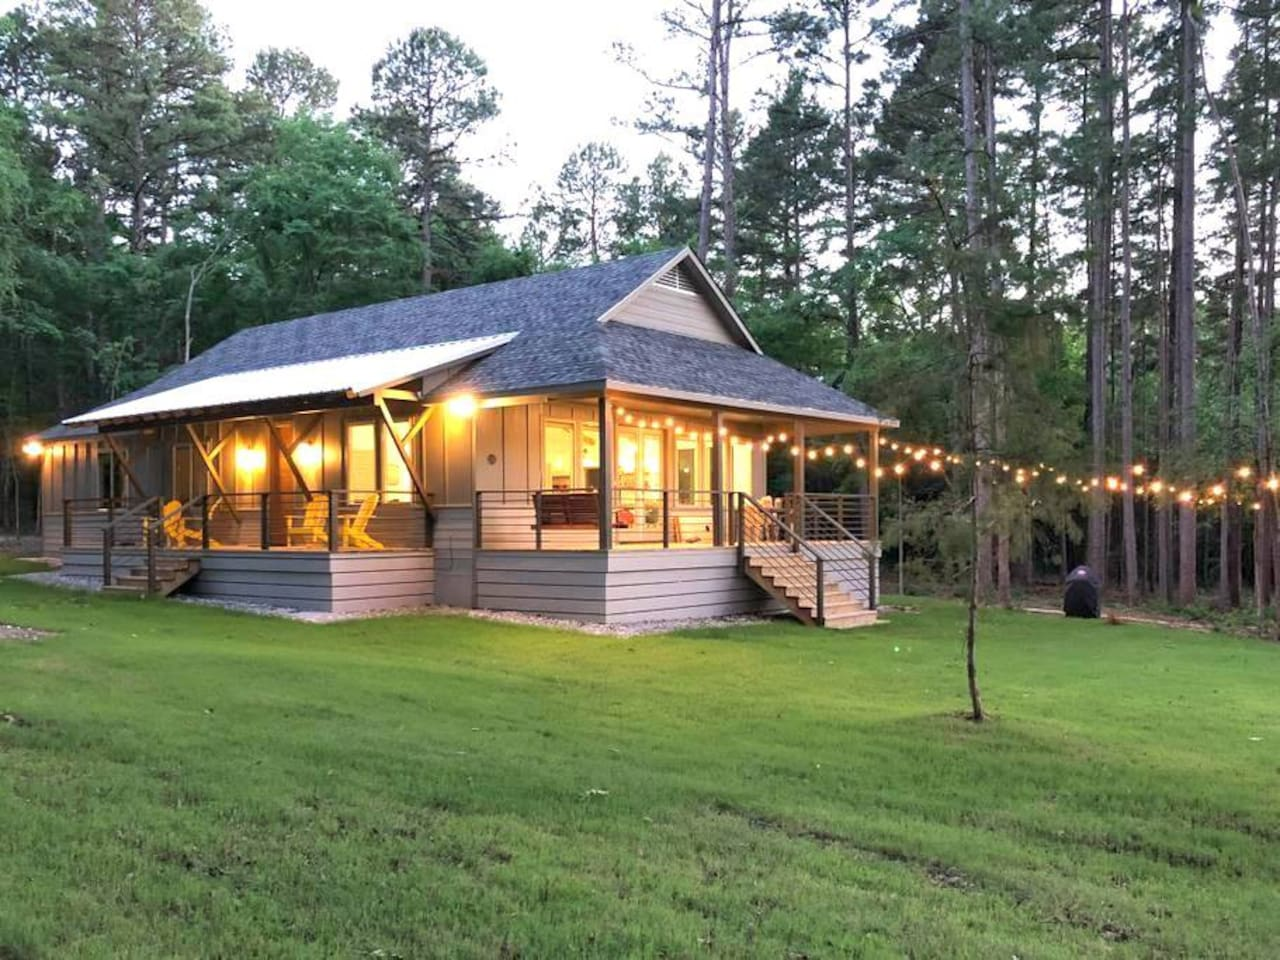 Two covered porches, plenty of outdoor lighting, and a great lawn to play on